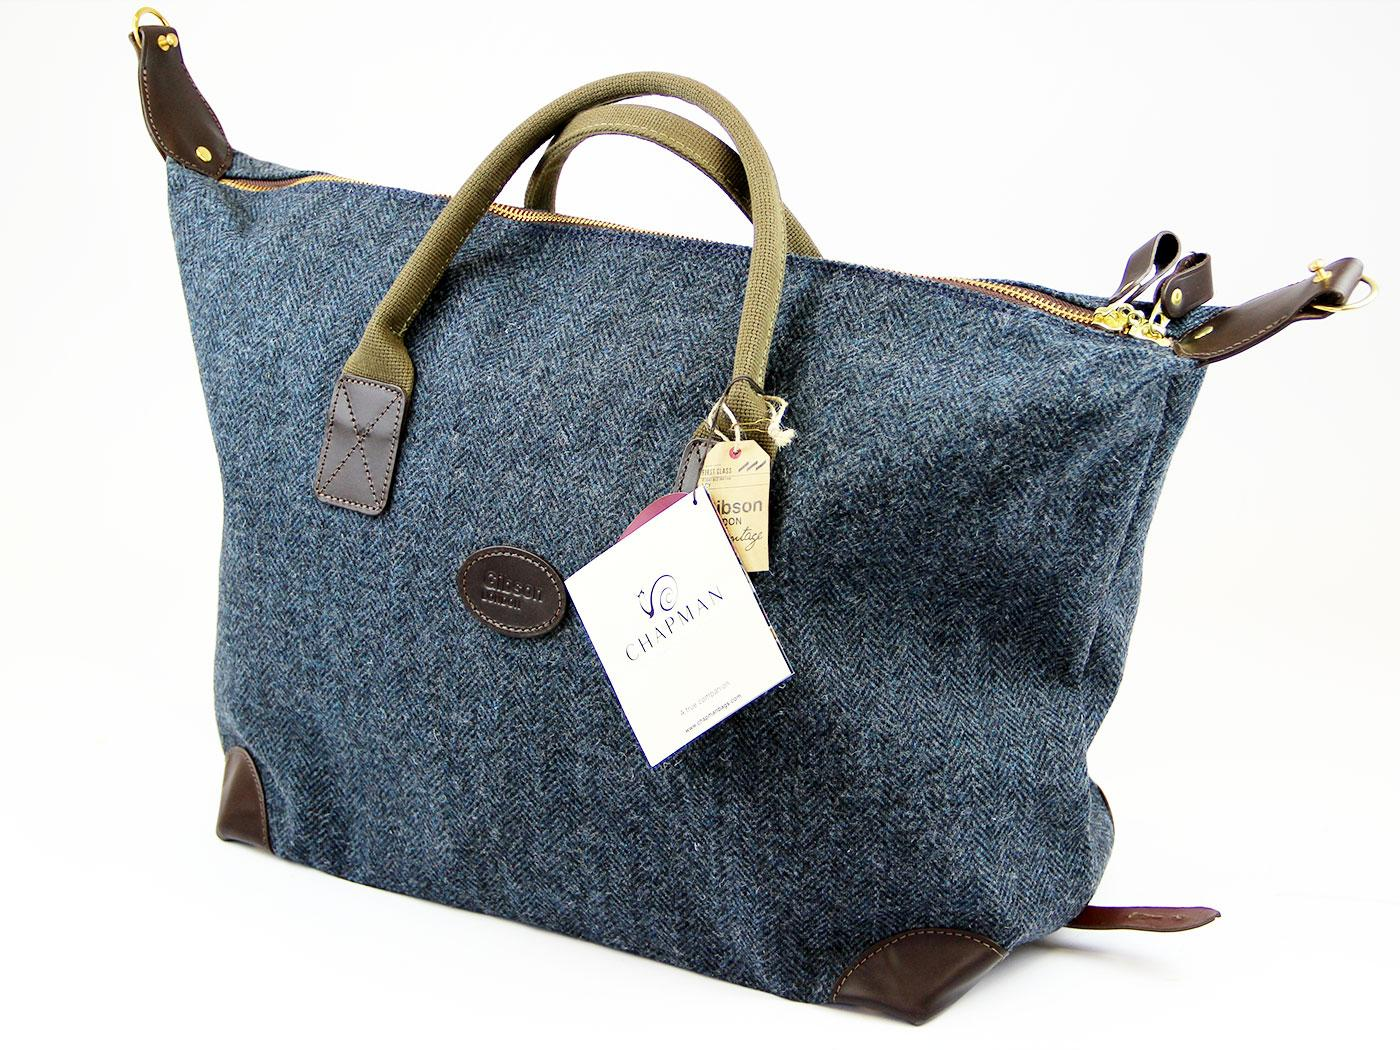 CHAPMAN BAGS for GIBSON LONDON Tweed Holdall Bag